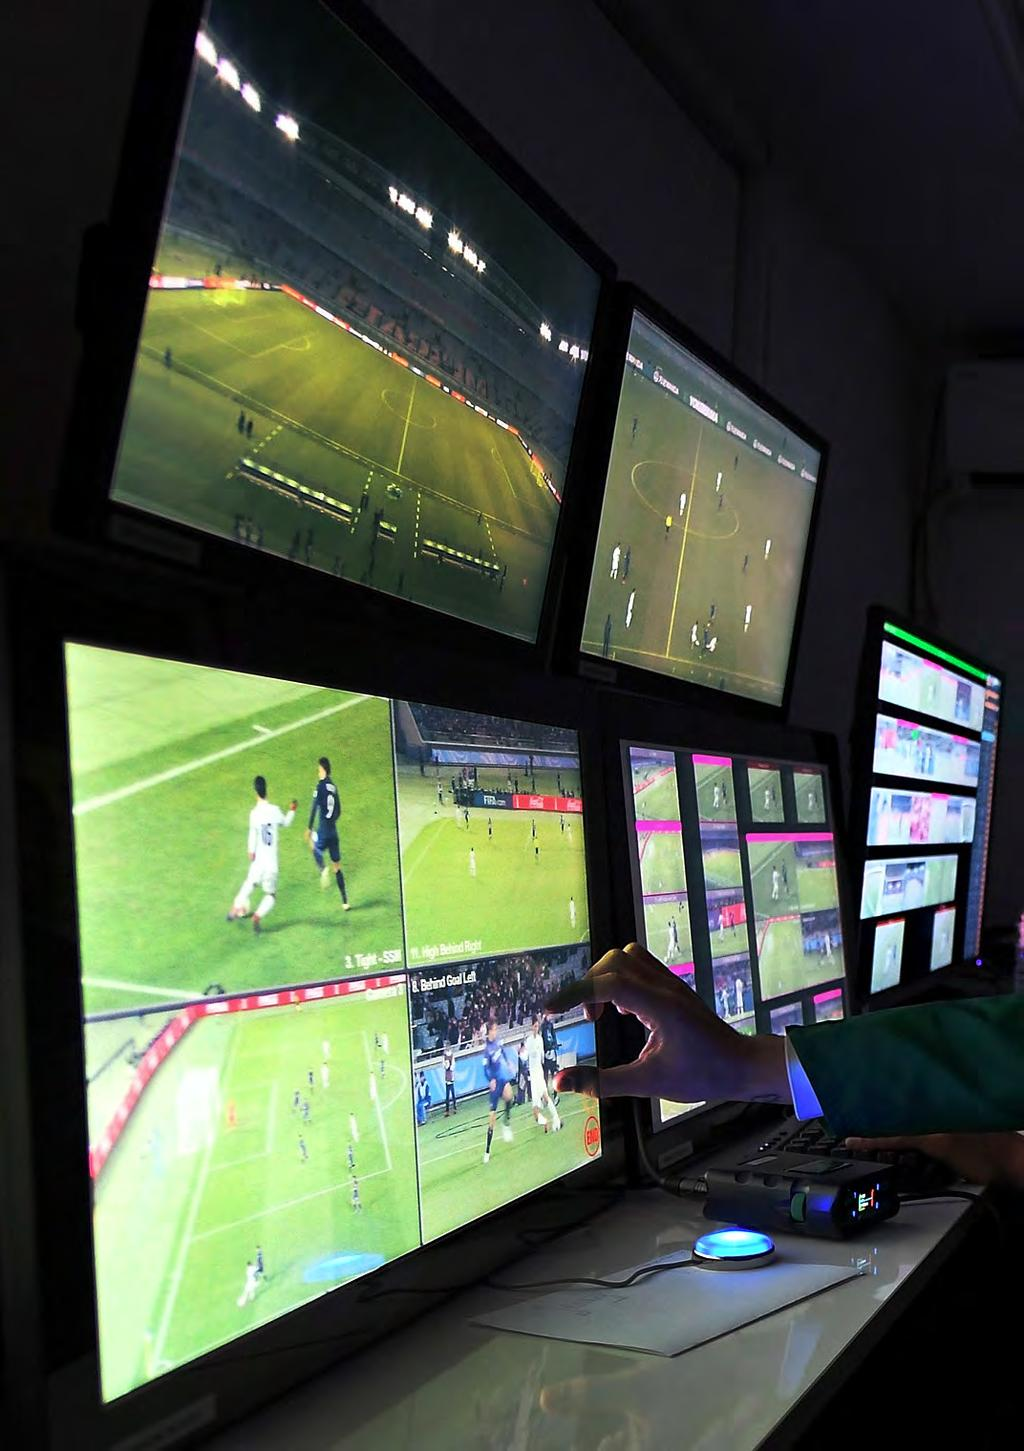 INNOVATION OPENING NEW HORIZONS Video assistant referee (VAR) OUR BELIEF Every single day, many new